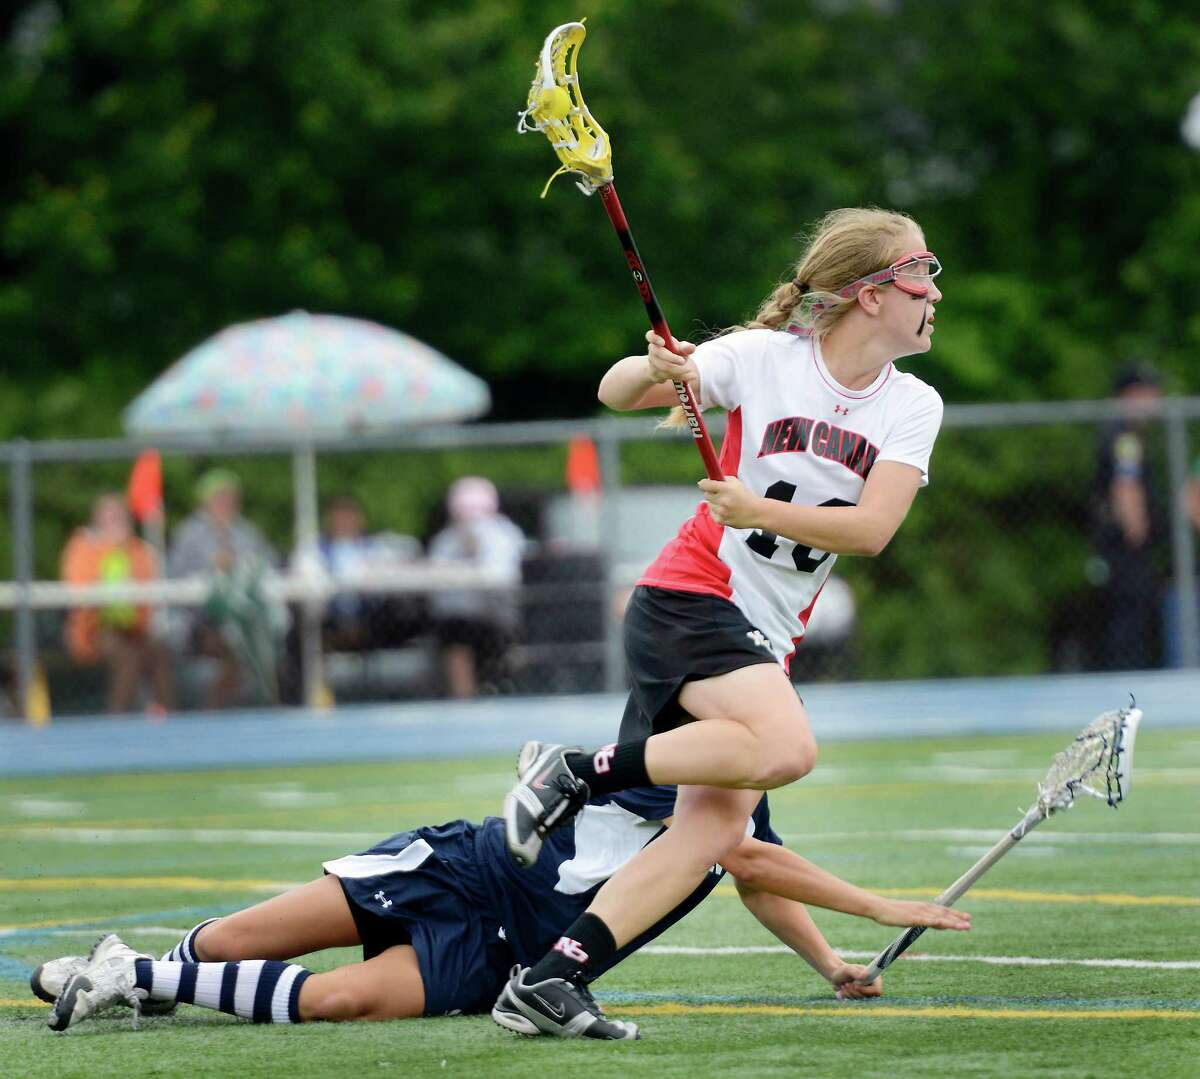 New Canaan High School's Sarah Mannelly gets by Wilton High School's Samantha Blicht in the CIAC Class M girls lacrosse championship held at Bunnell High School, Stratford, CT on Saturday June 9th, 2012.